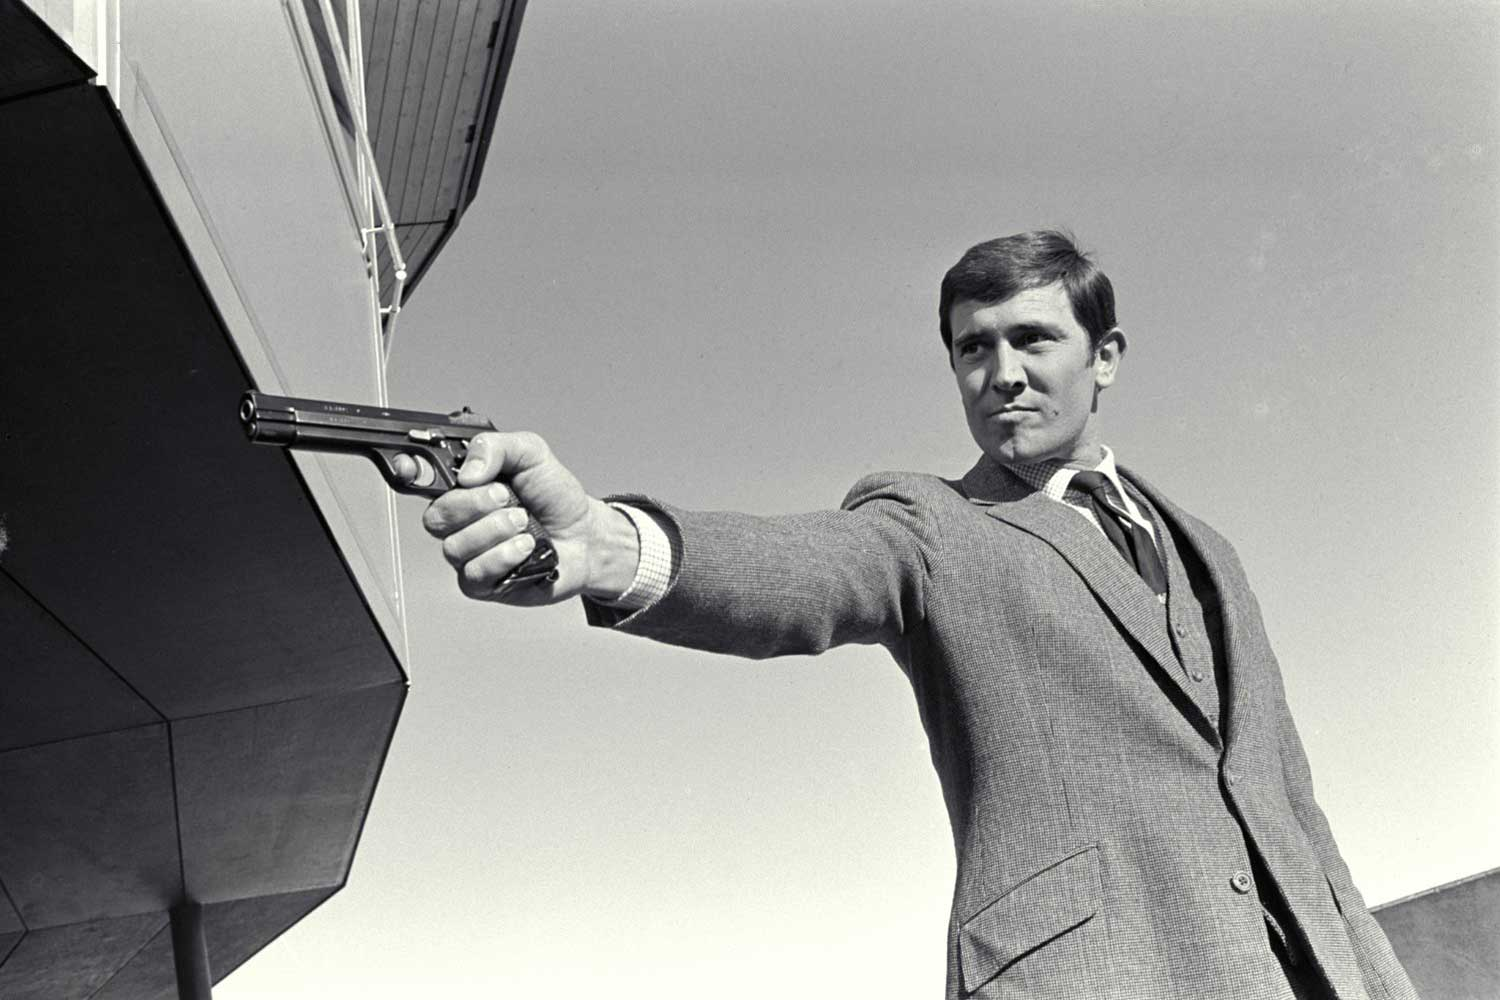 George Lazenby as James Bond in the 1969 film, On Her Majesty's Secret Service